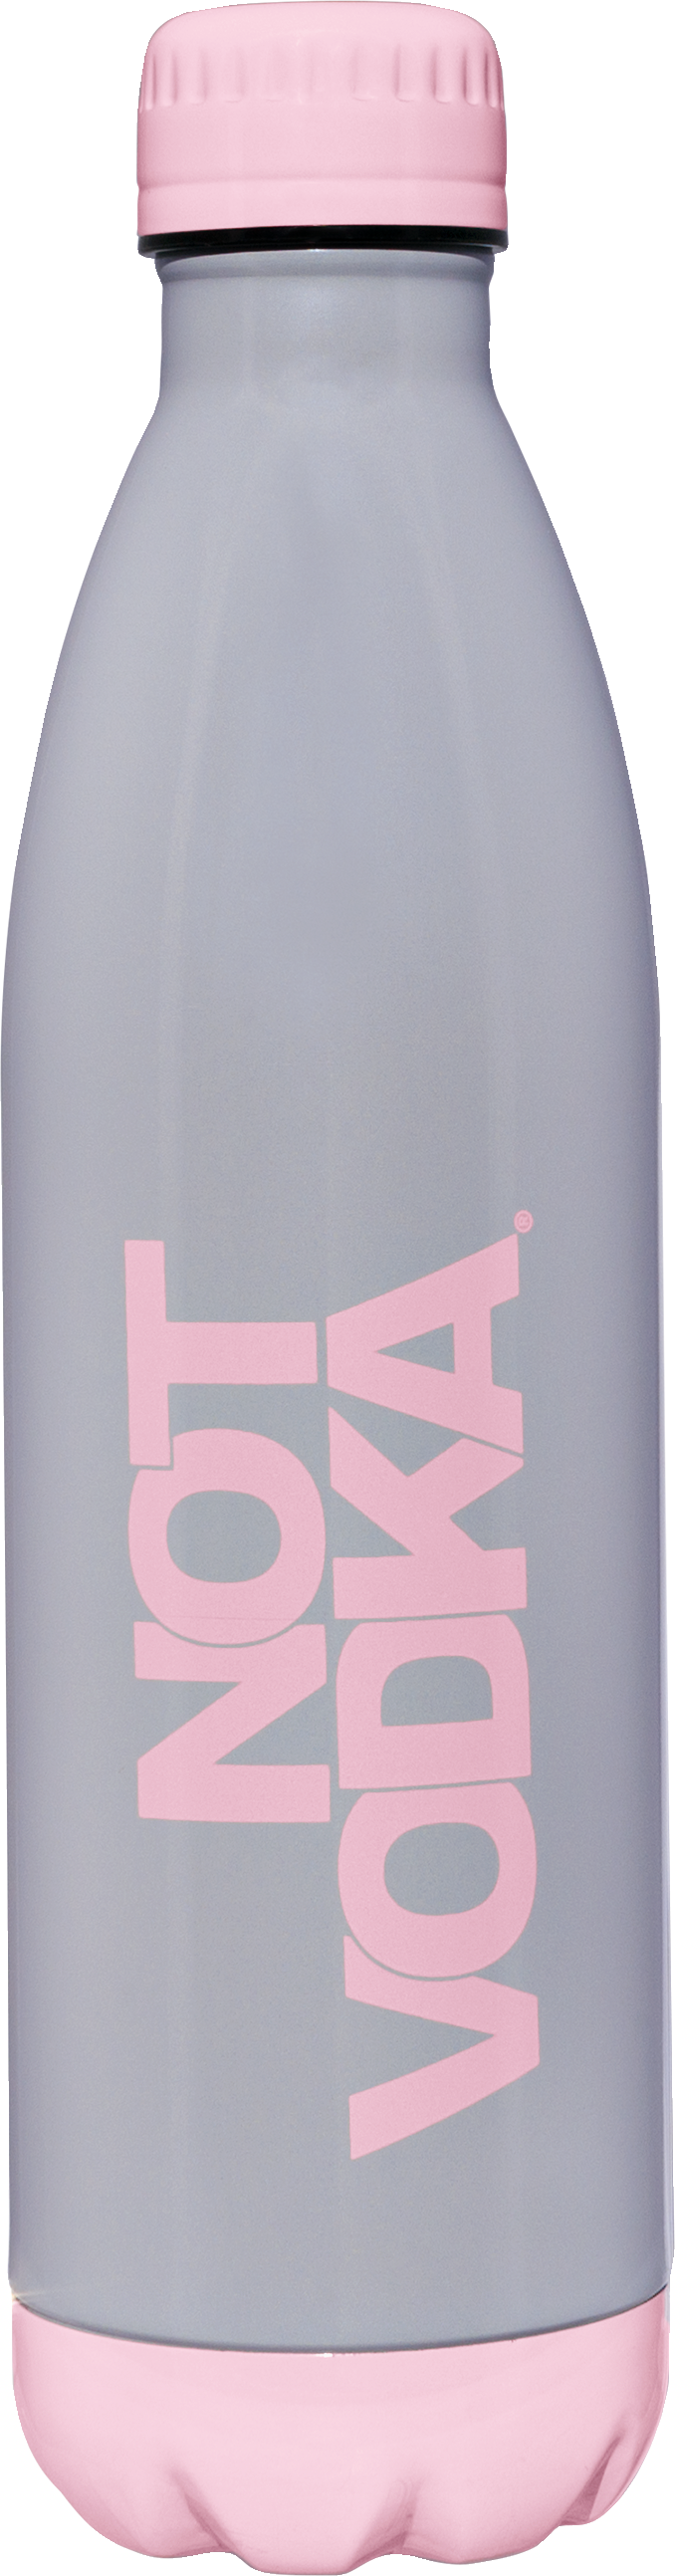 Two Tone Series Insulated Water Bottle  Gray/Pink, PACKAGE 1Ct